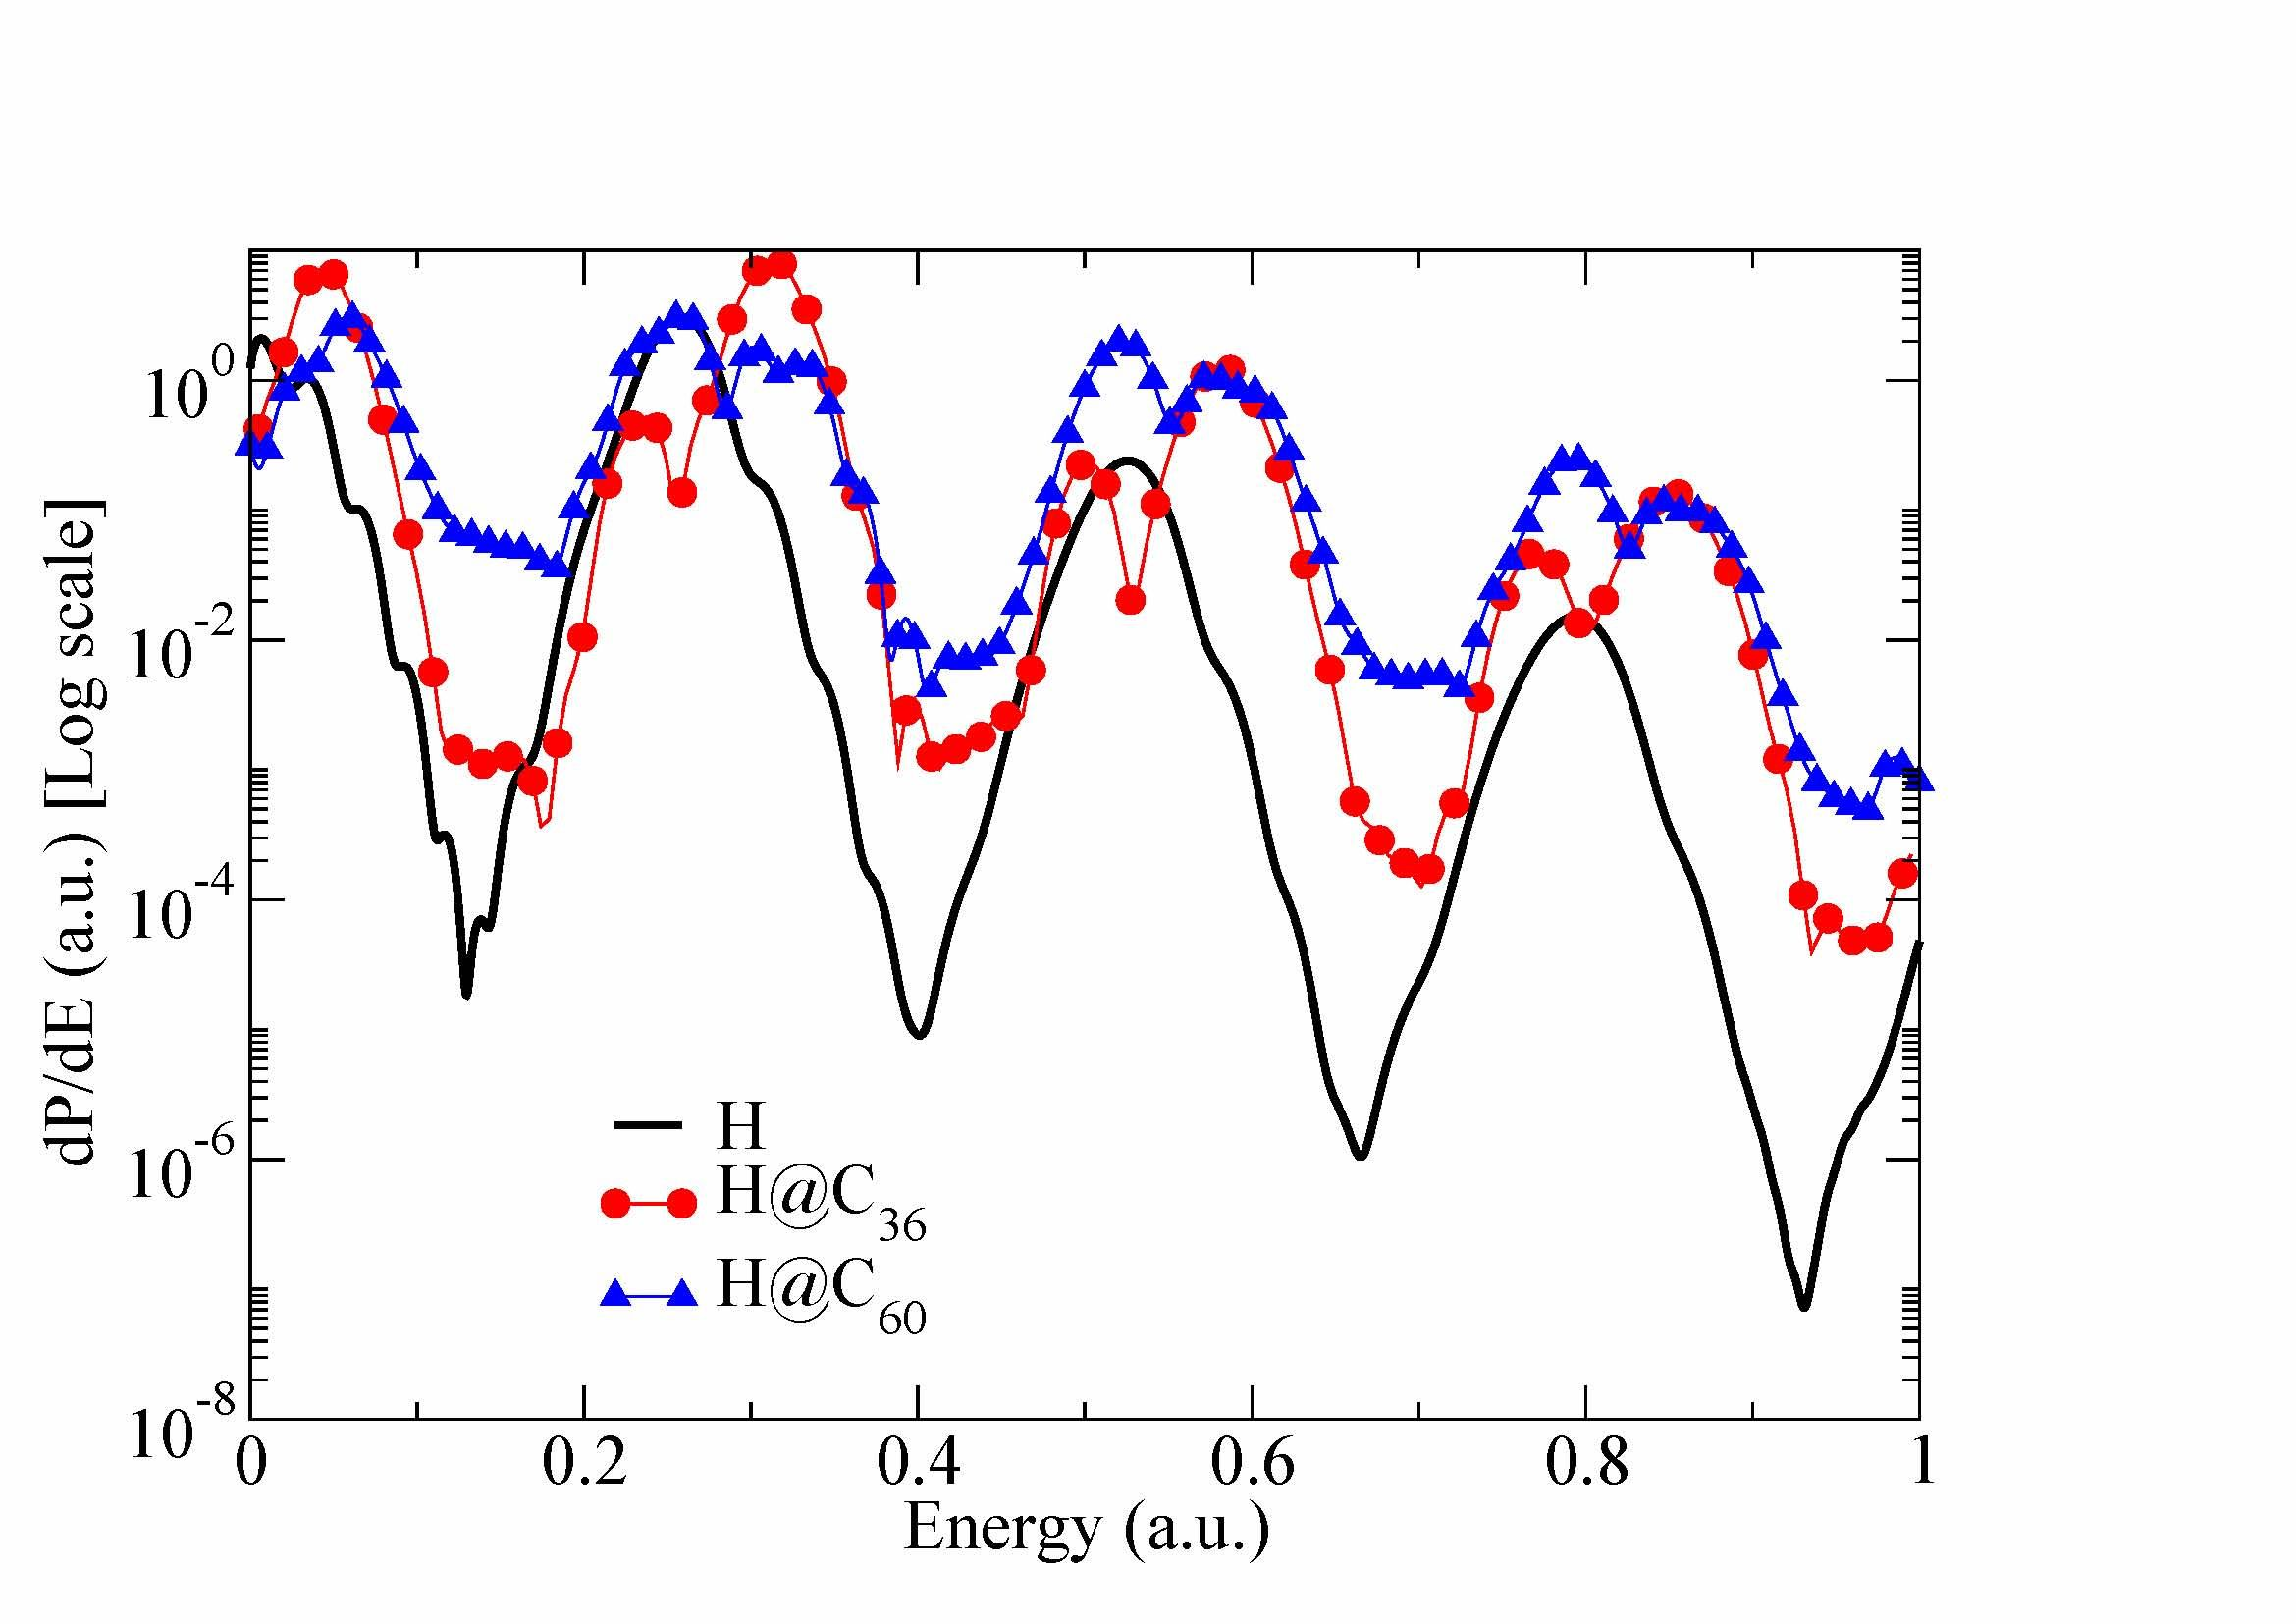 Twentieth international summer school on vacuum electron and ion - Ejected Electron Spectrum Of The Bare And Caged Hydrogen Atom Subjected To An External Light Pulse